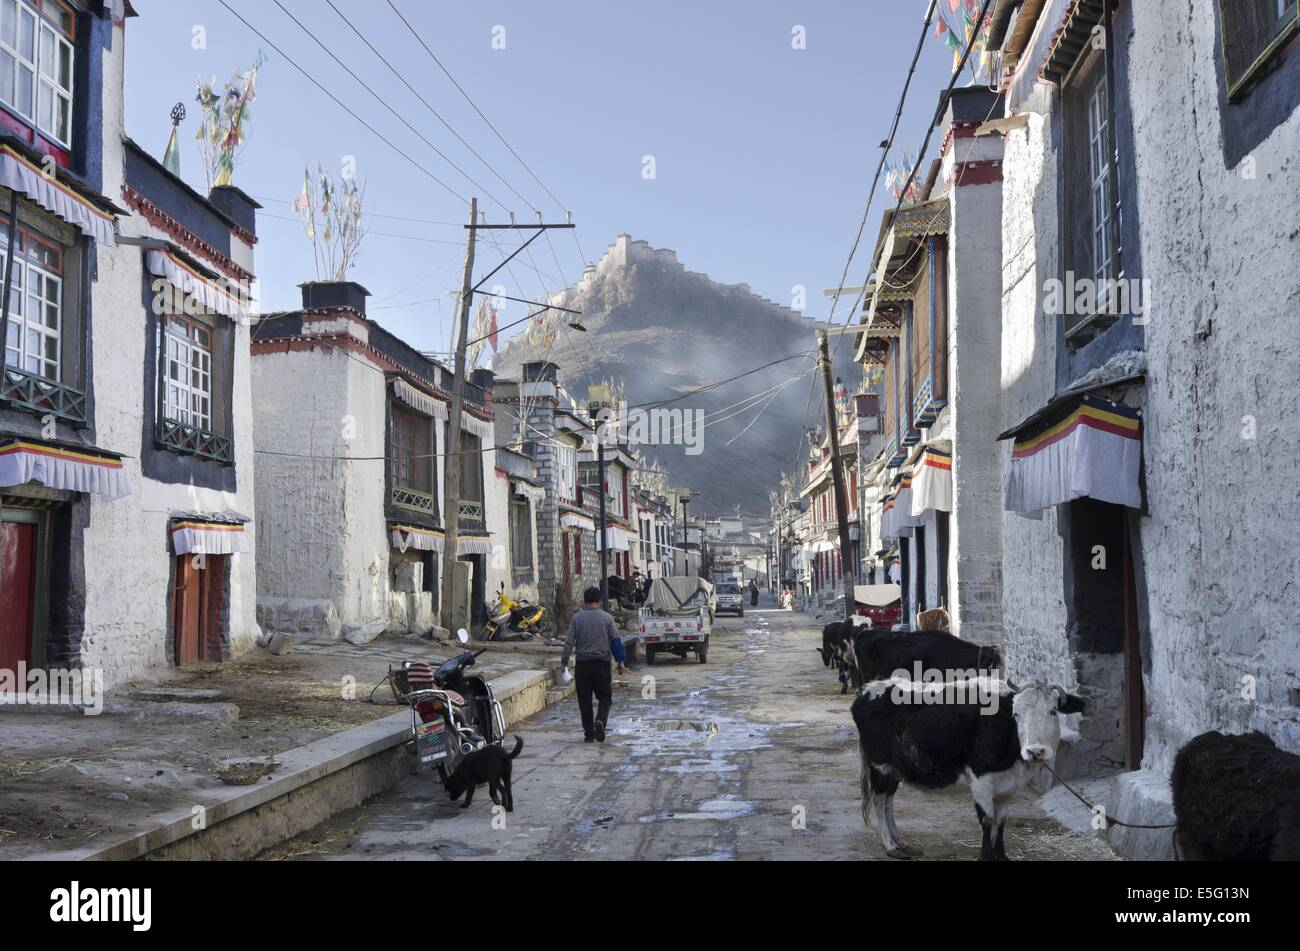 Traditional houses in the Old town of Gyantse - Stock Image